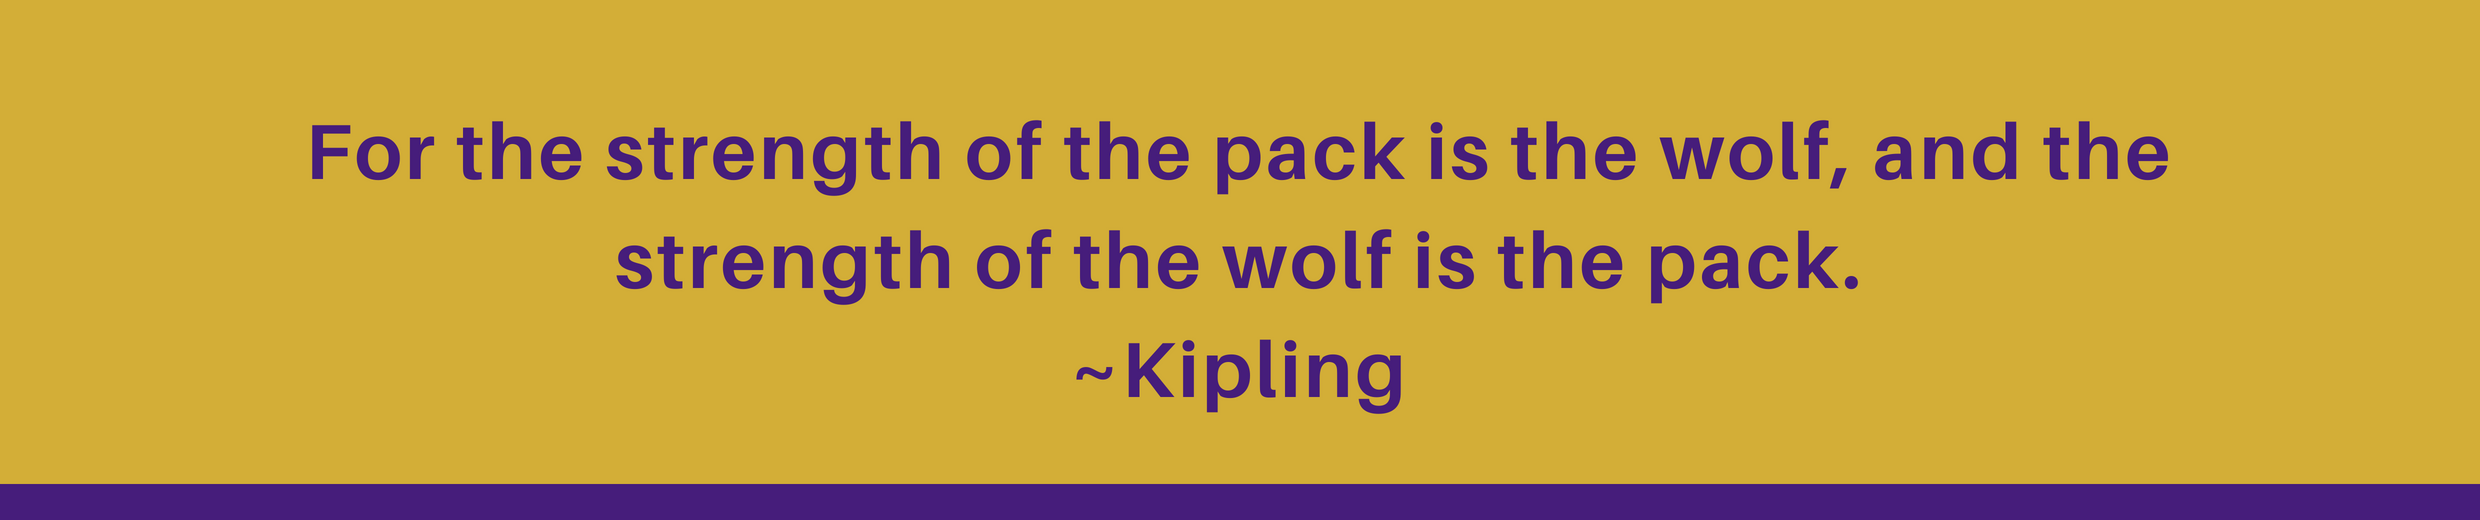 For the strength of the pack is the wolf, and the strength of the wolf is the pack. ~Kipling